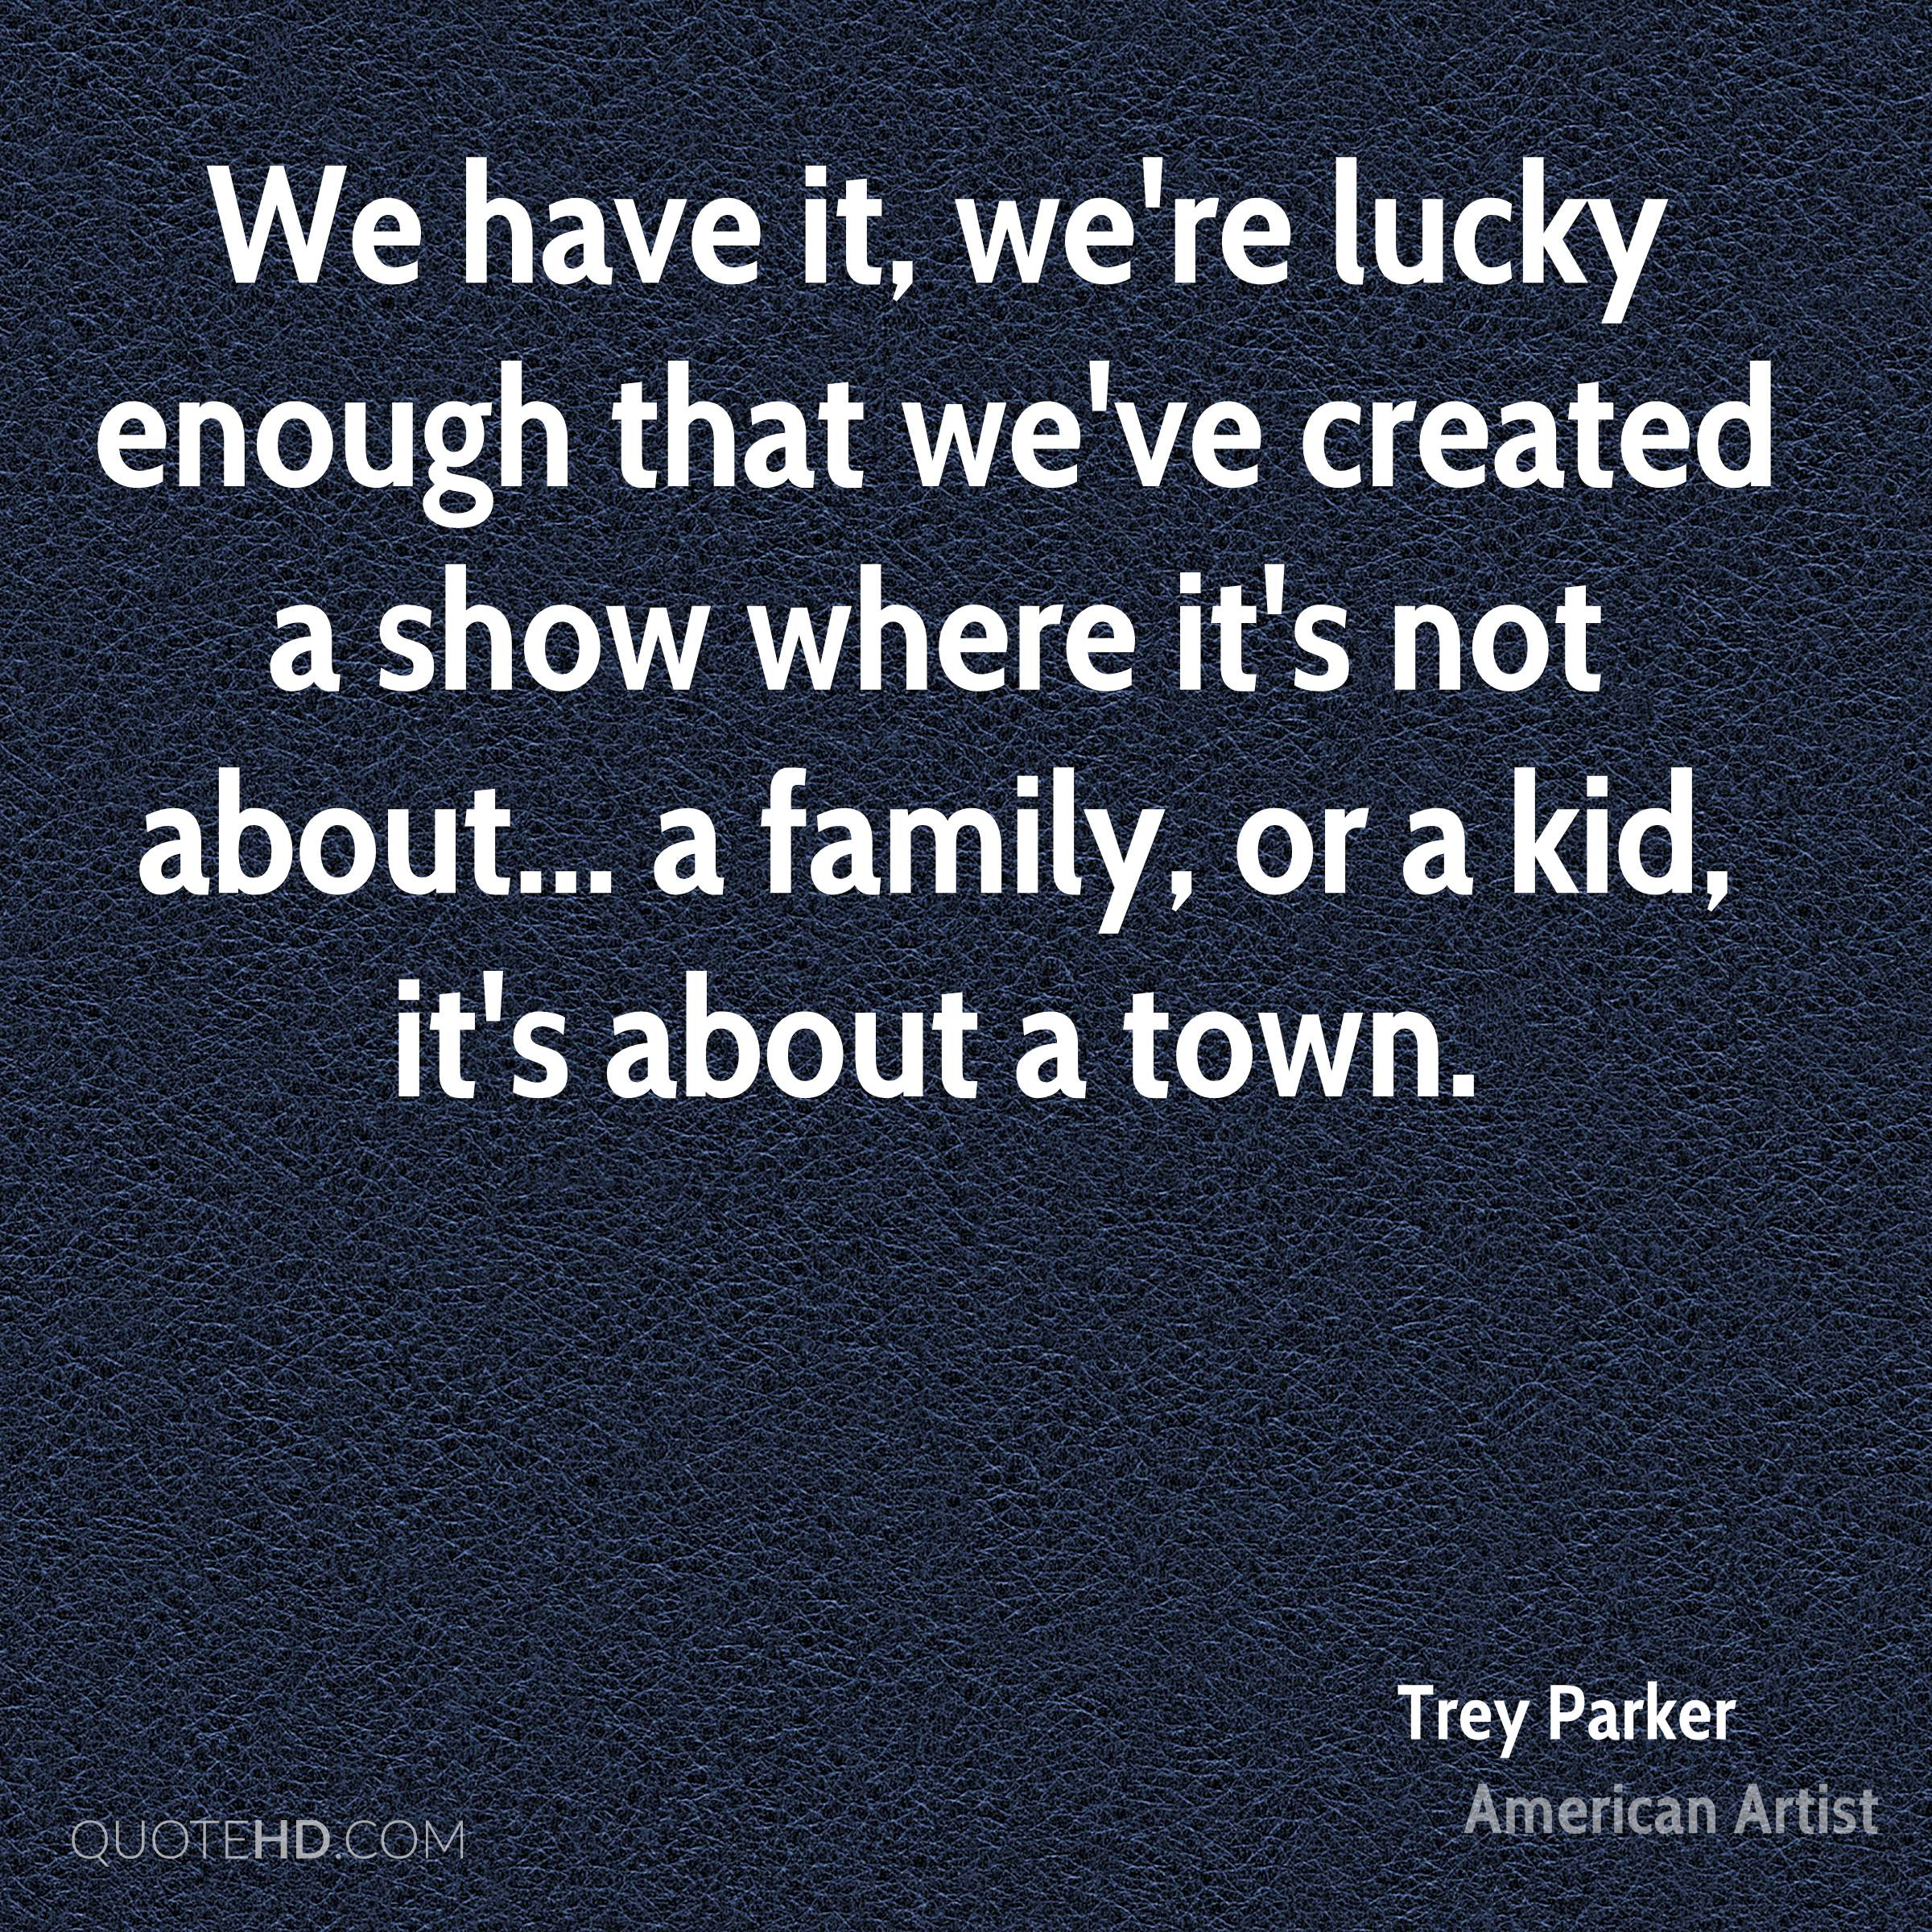 We have it, we're lucky enough that we've created a show where it's not about... a family, or a kid, it's about a town.